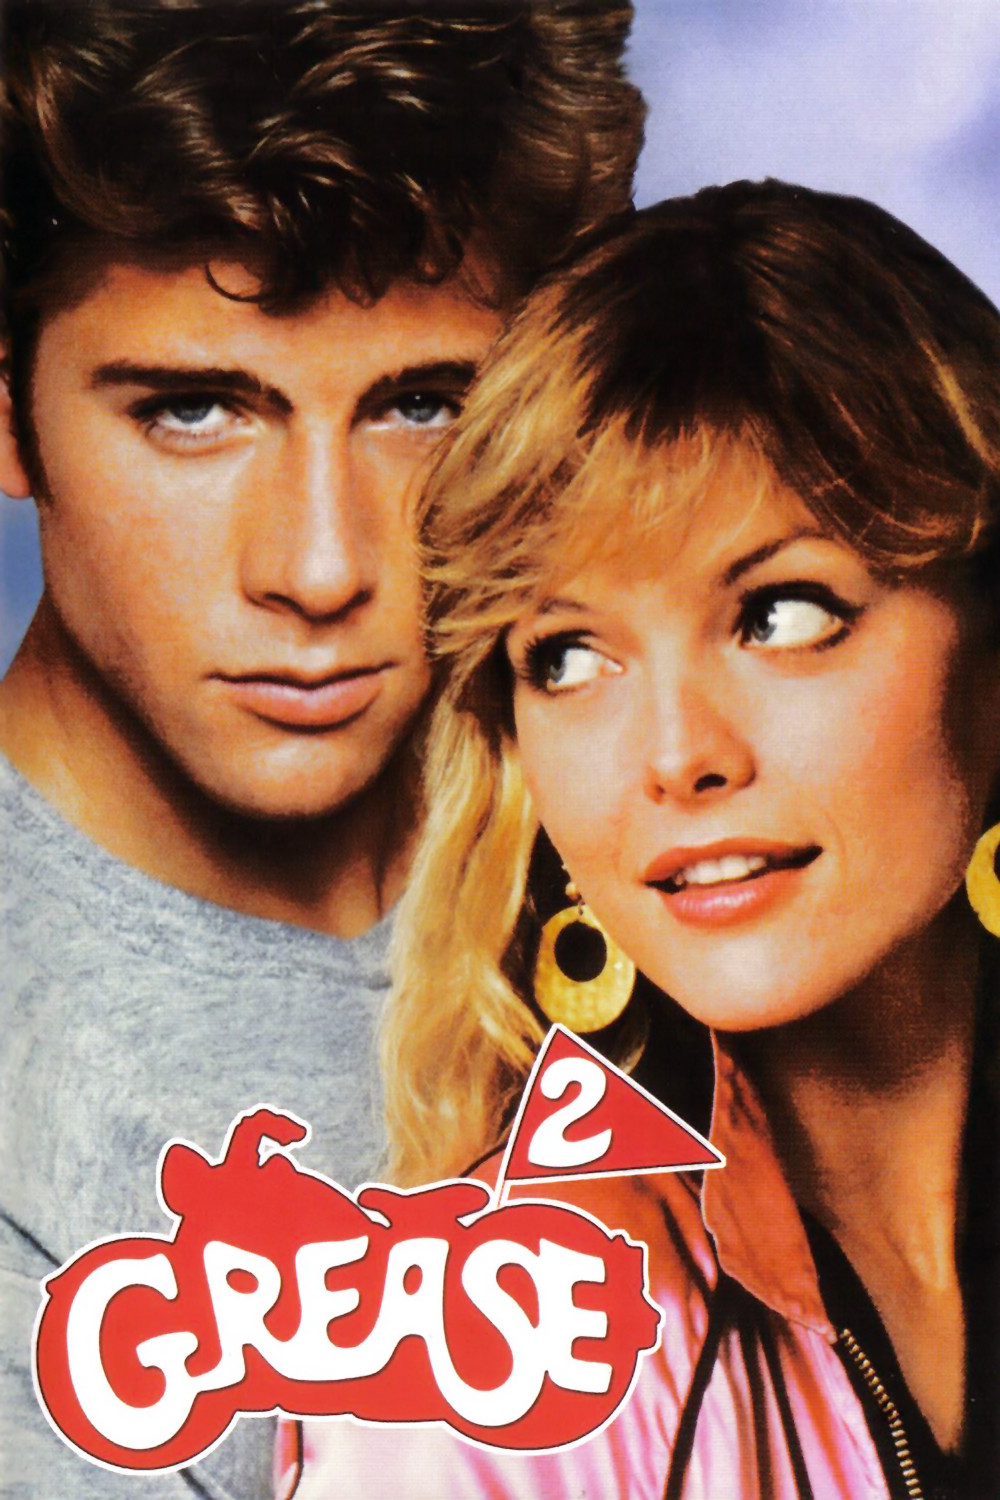 Bedroom Eyes Full Movie 2017 grease 2' cast then and now!